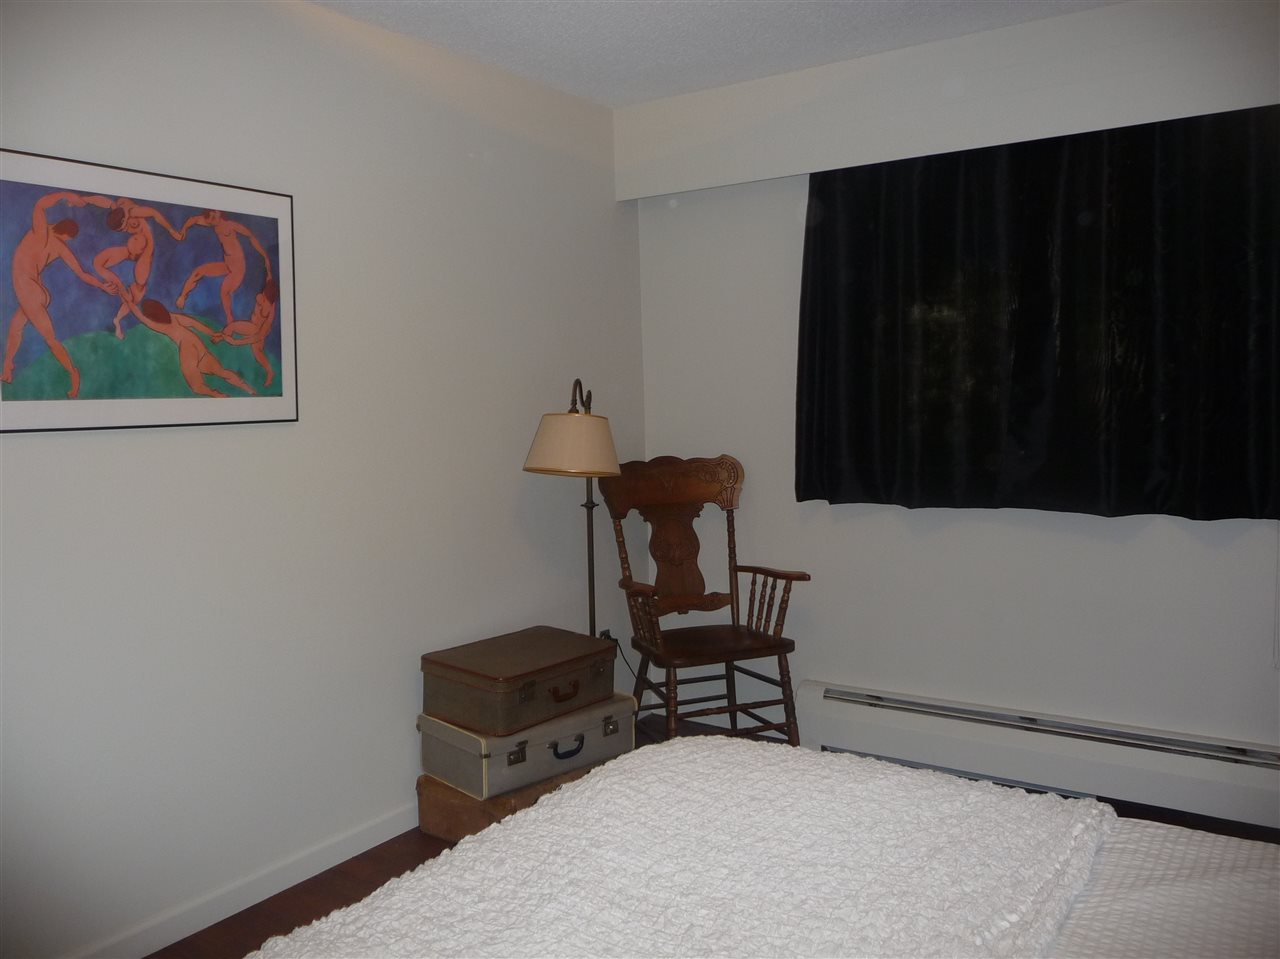 Photo 10: 103 2910 ONTARIO STREET in Vancouver: Mount Pleasant VE Condo for sale (Vancouver East)  : MLS® # R2058838